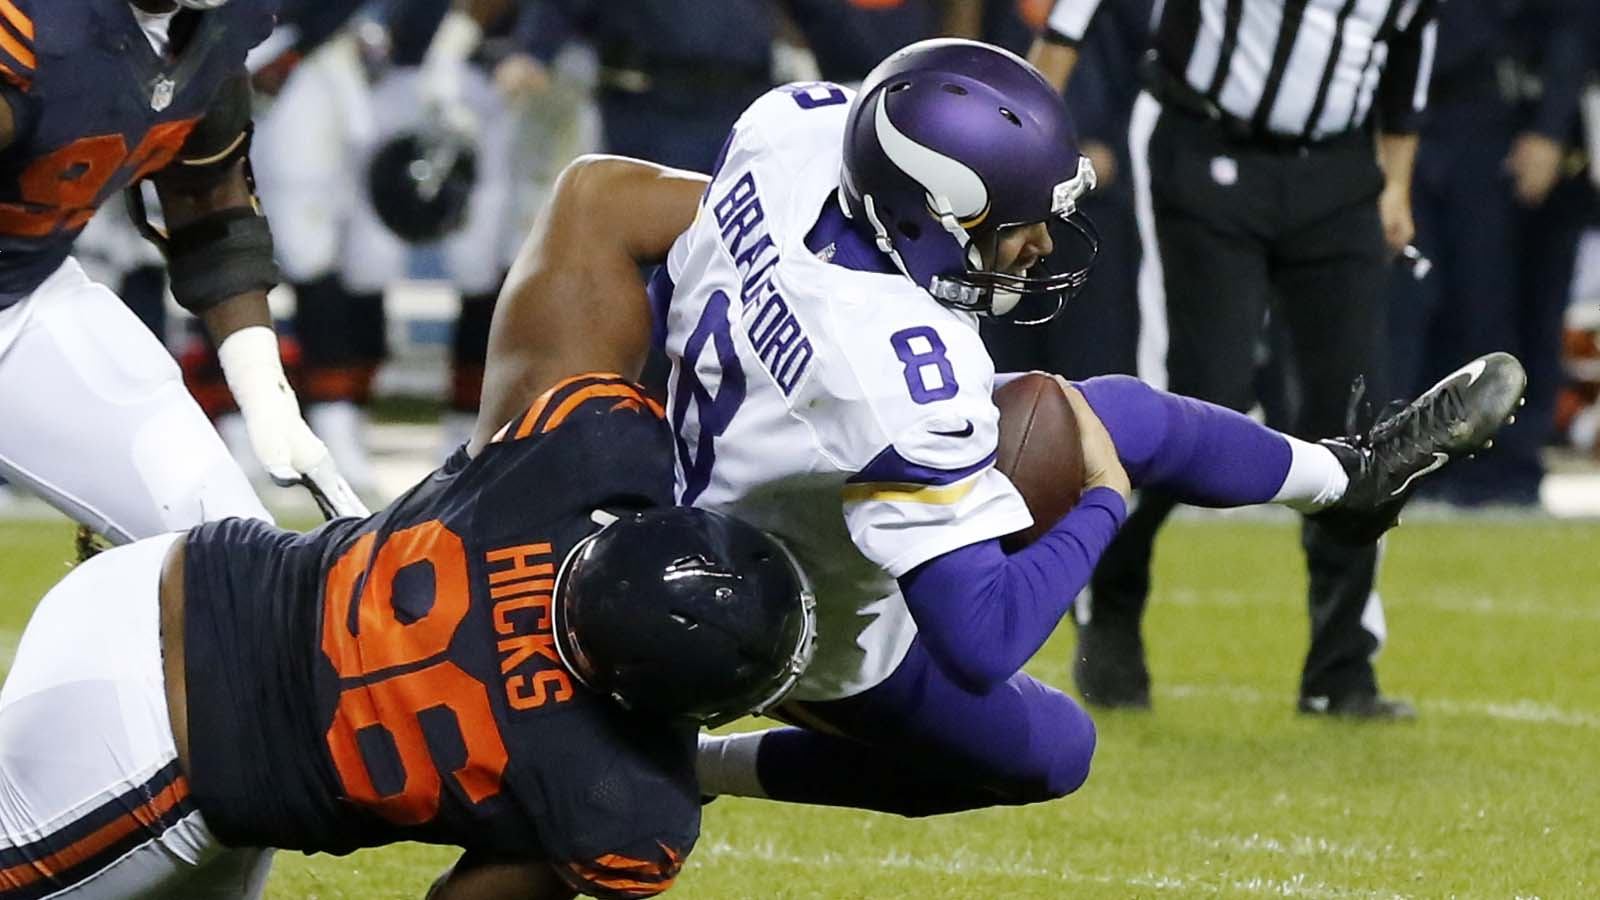 Vikings' Bradford sacked 5 times in loss to Bears